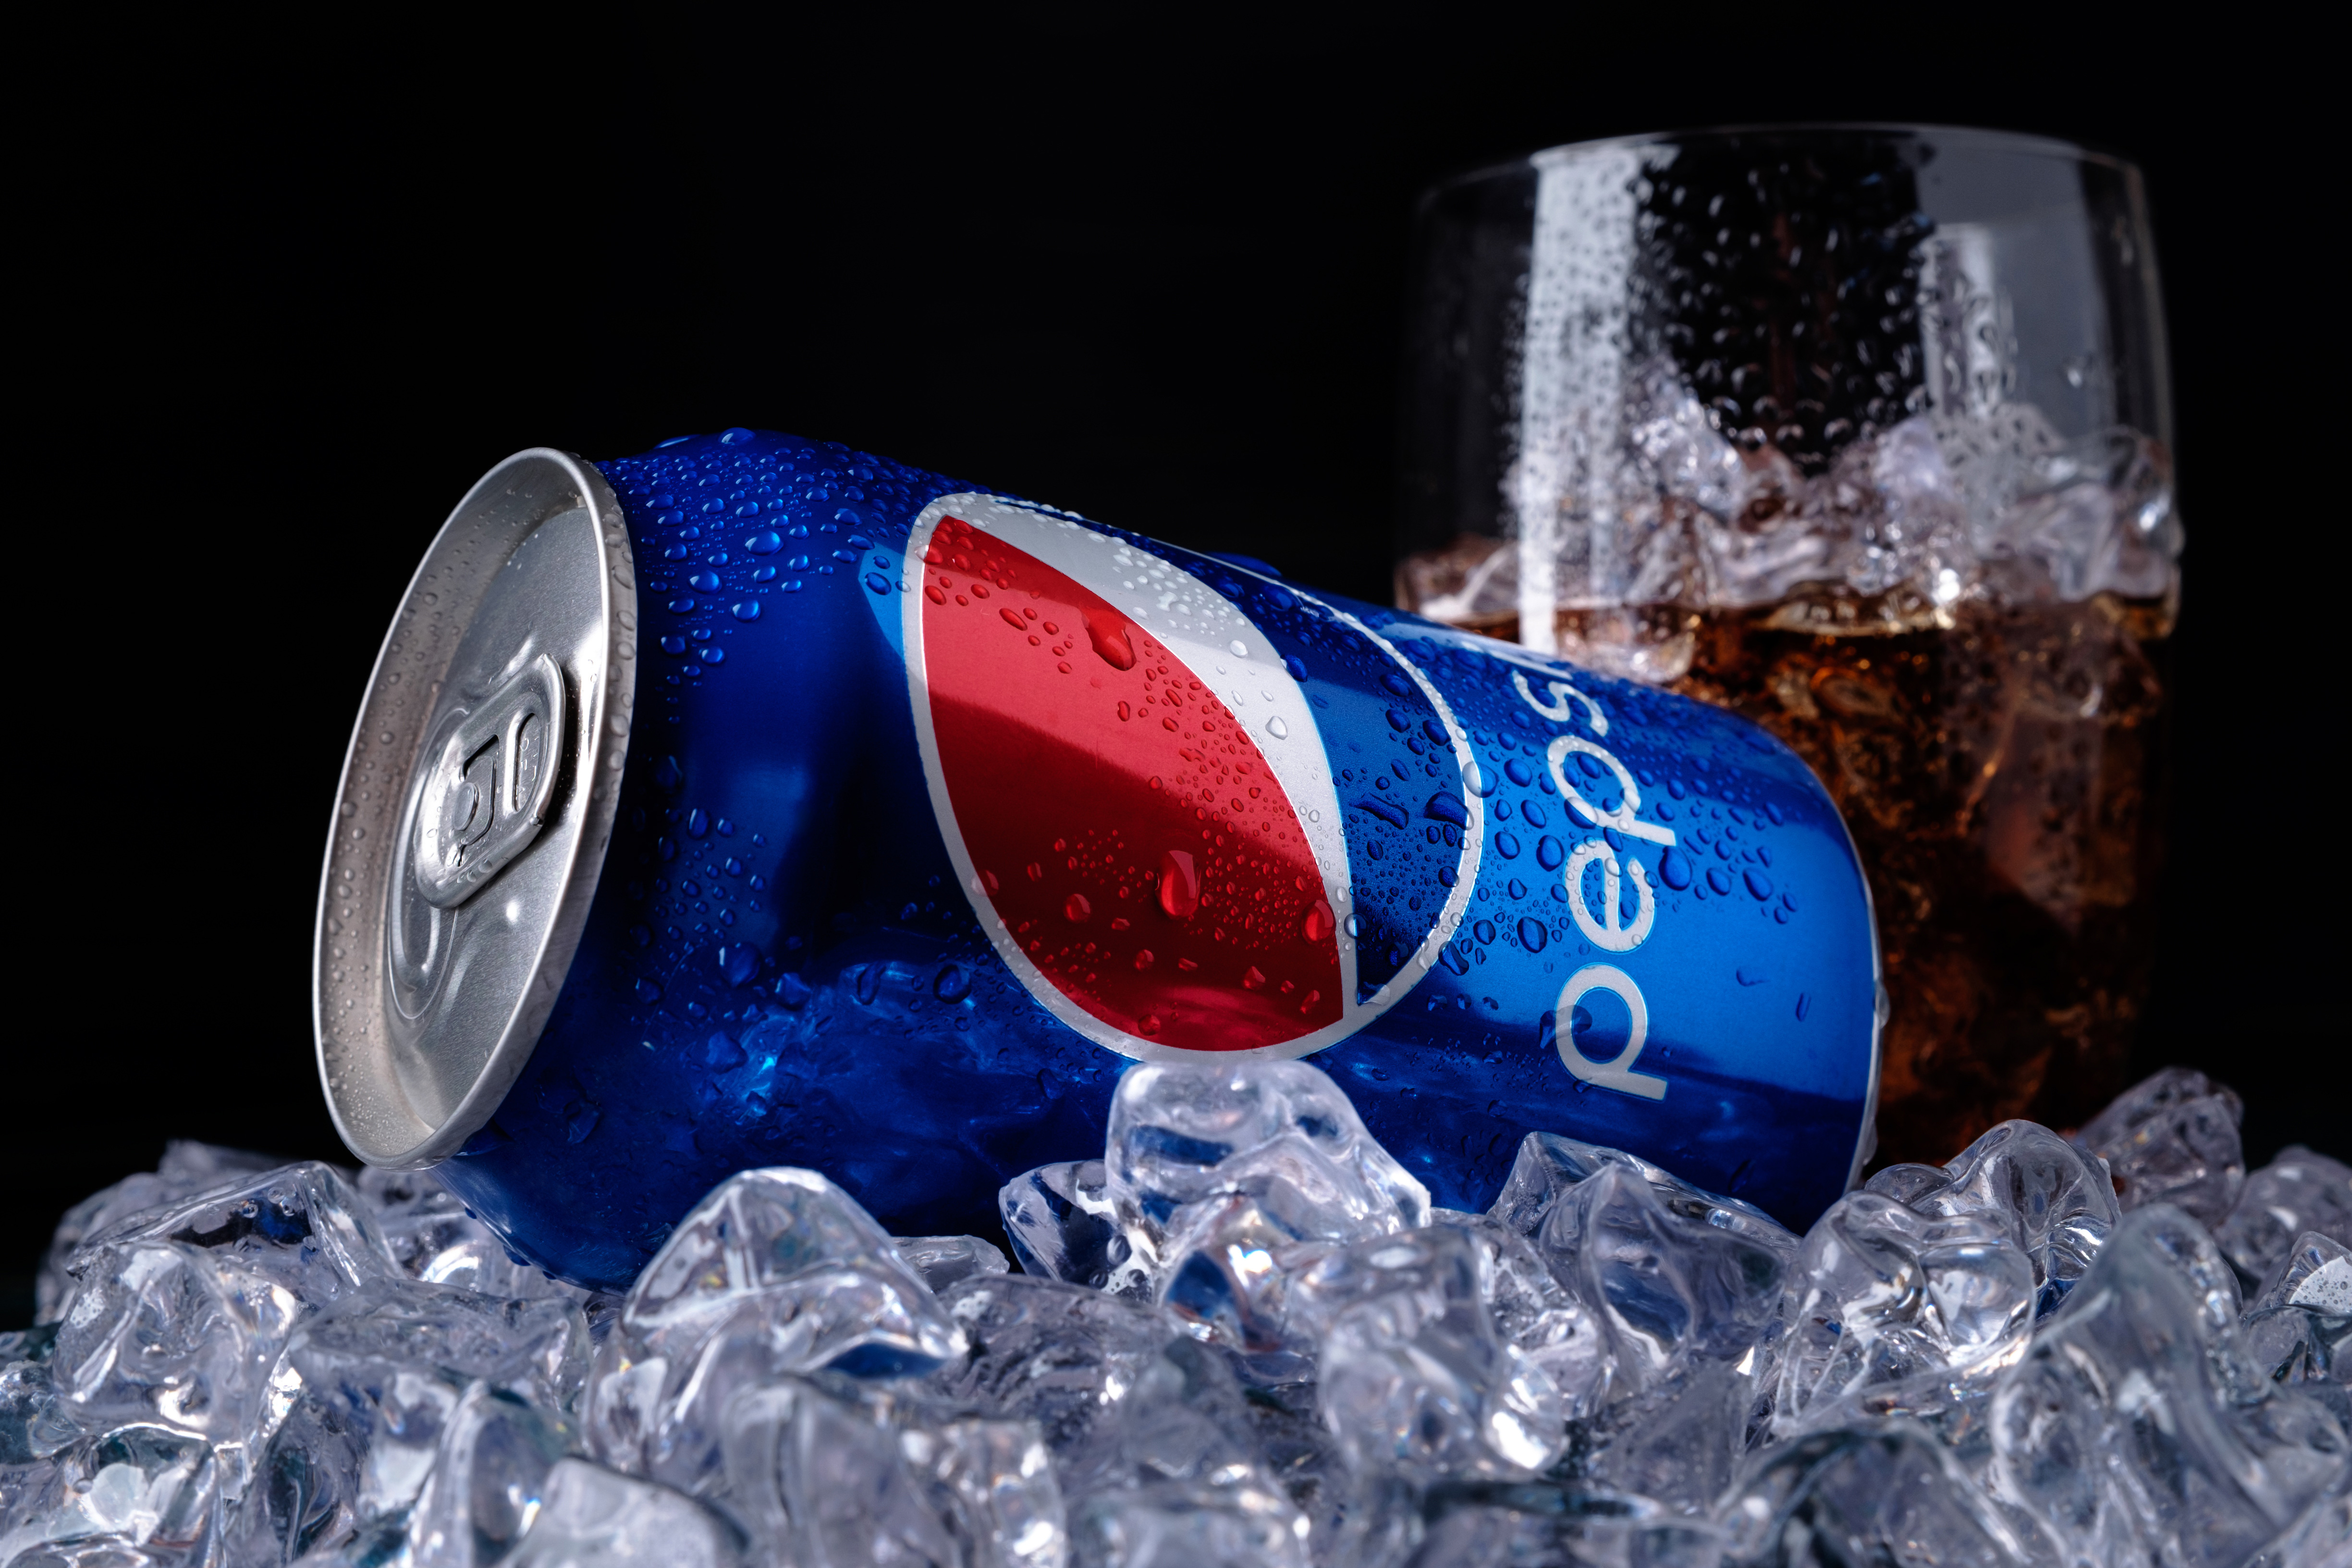 the pepsi phone is real and heres what it looks like ice cold